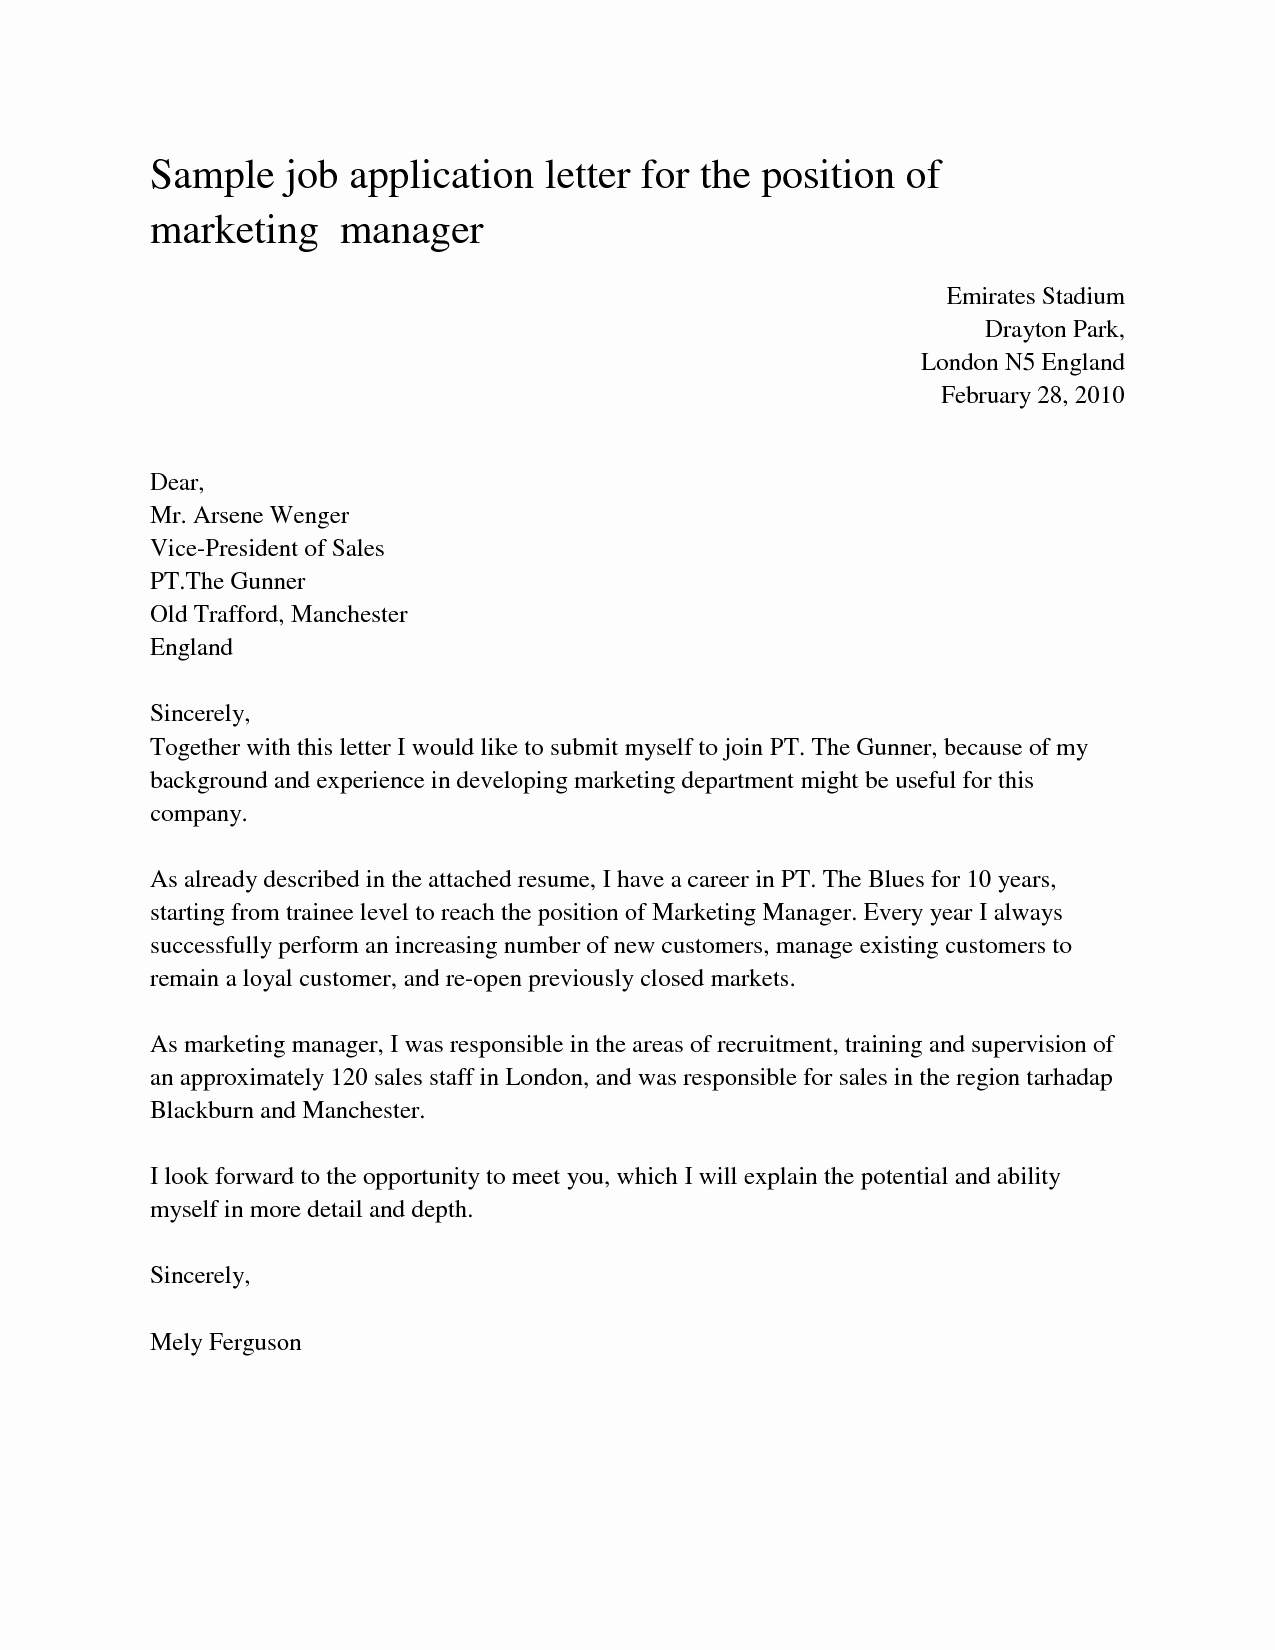 Sample Of Job Letter Lovely Download Free Application Letters